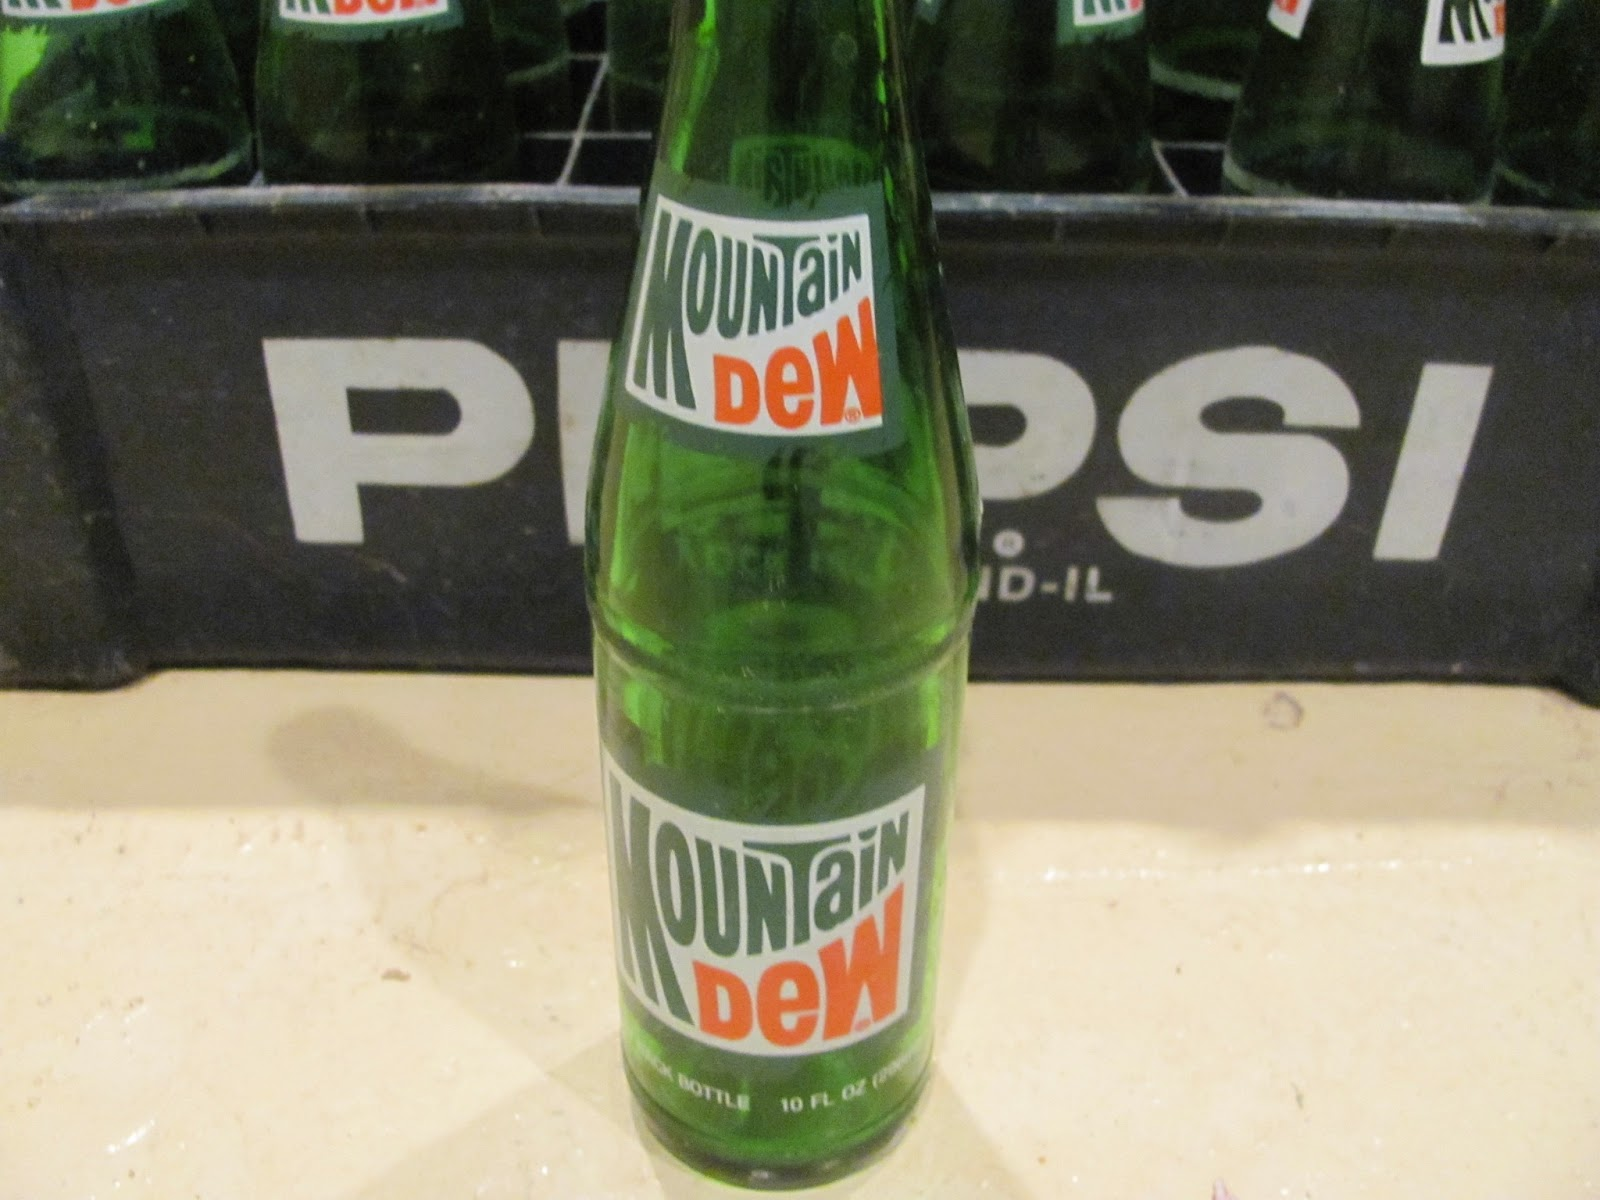 Closeup shot of a single Mountain Dew bottle to show the old logo